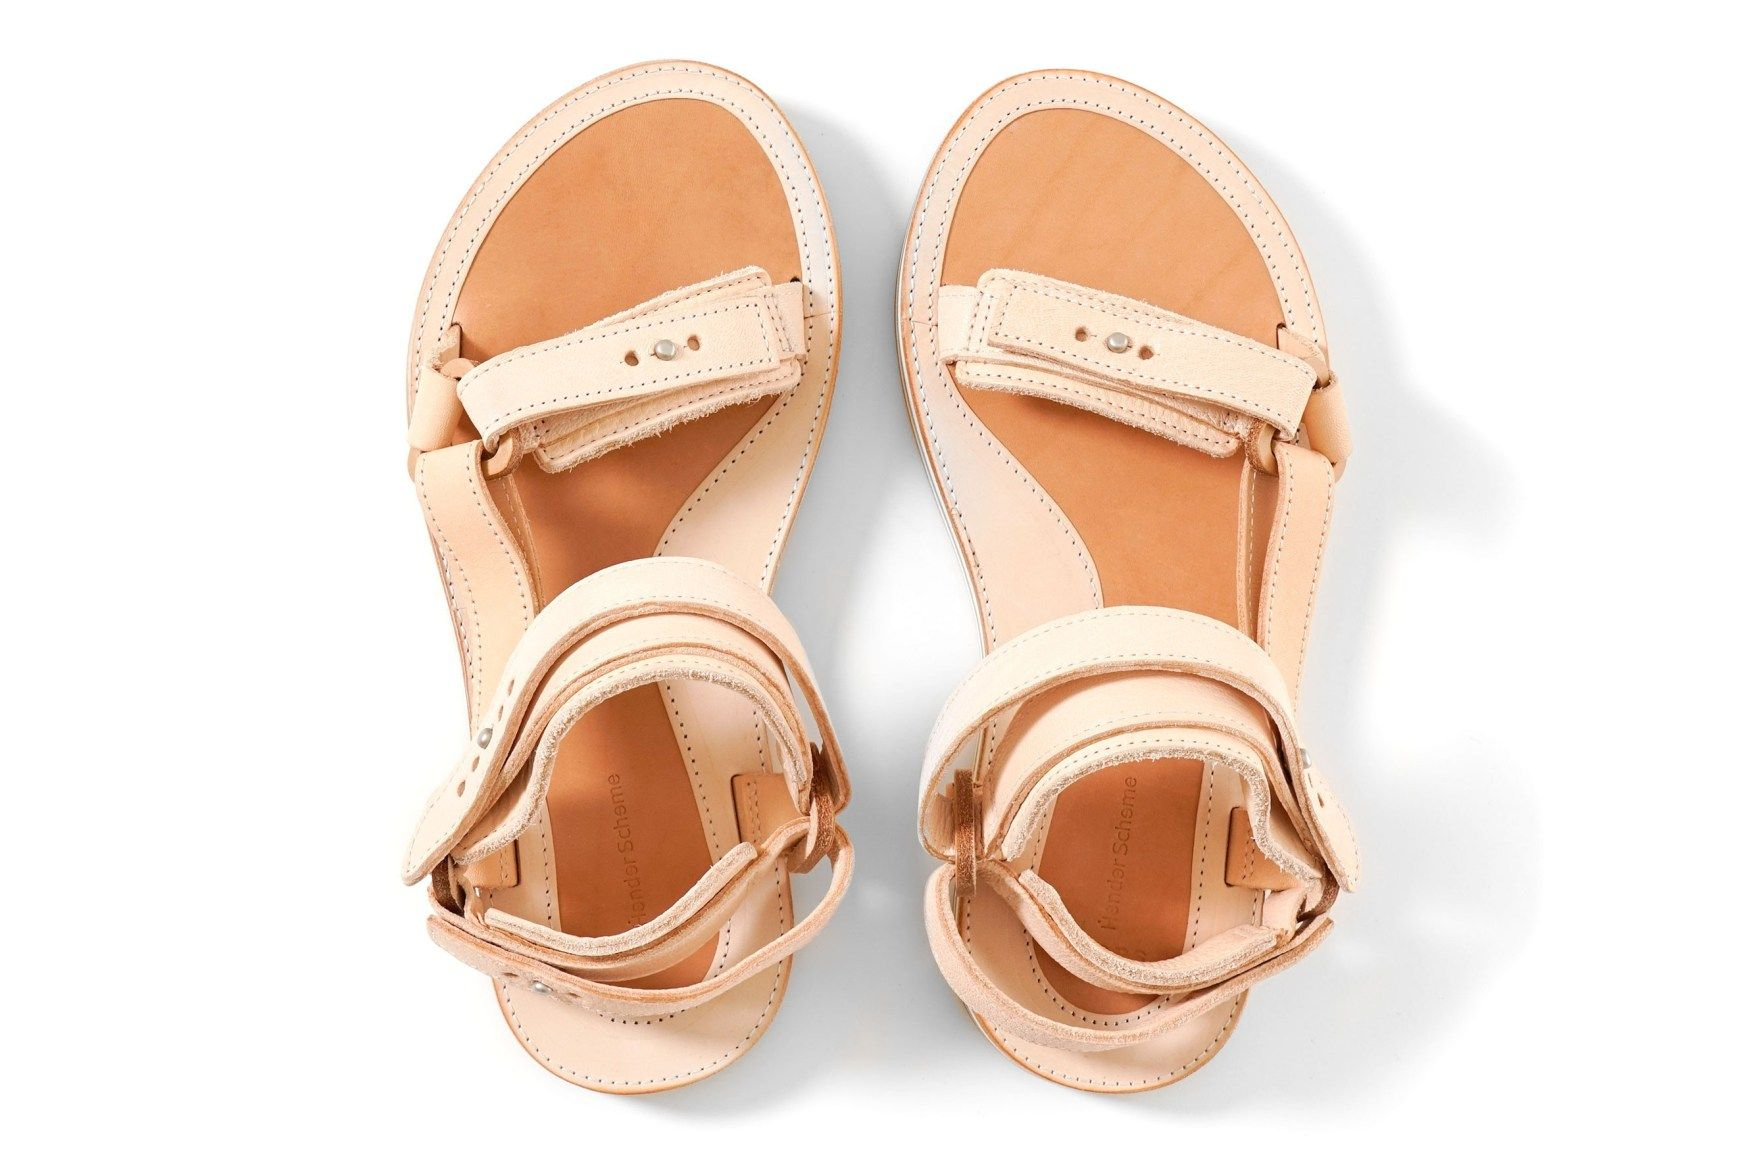 fdaf5412a54 Invest in These sacai x Hender Scheme Sandals for the Warmer Months ...